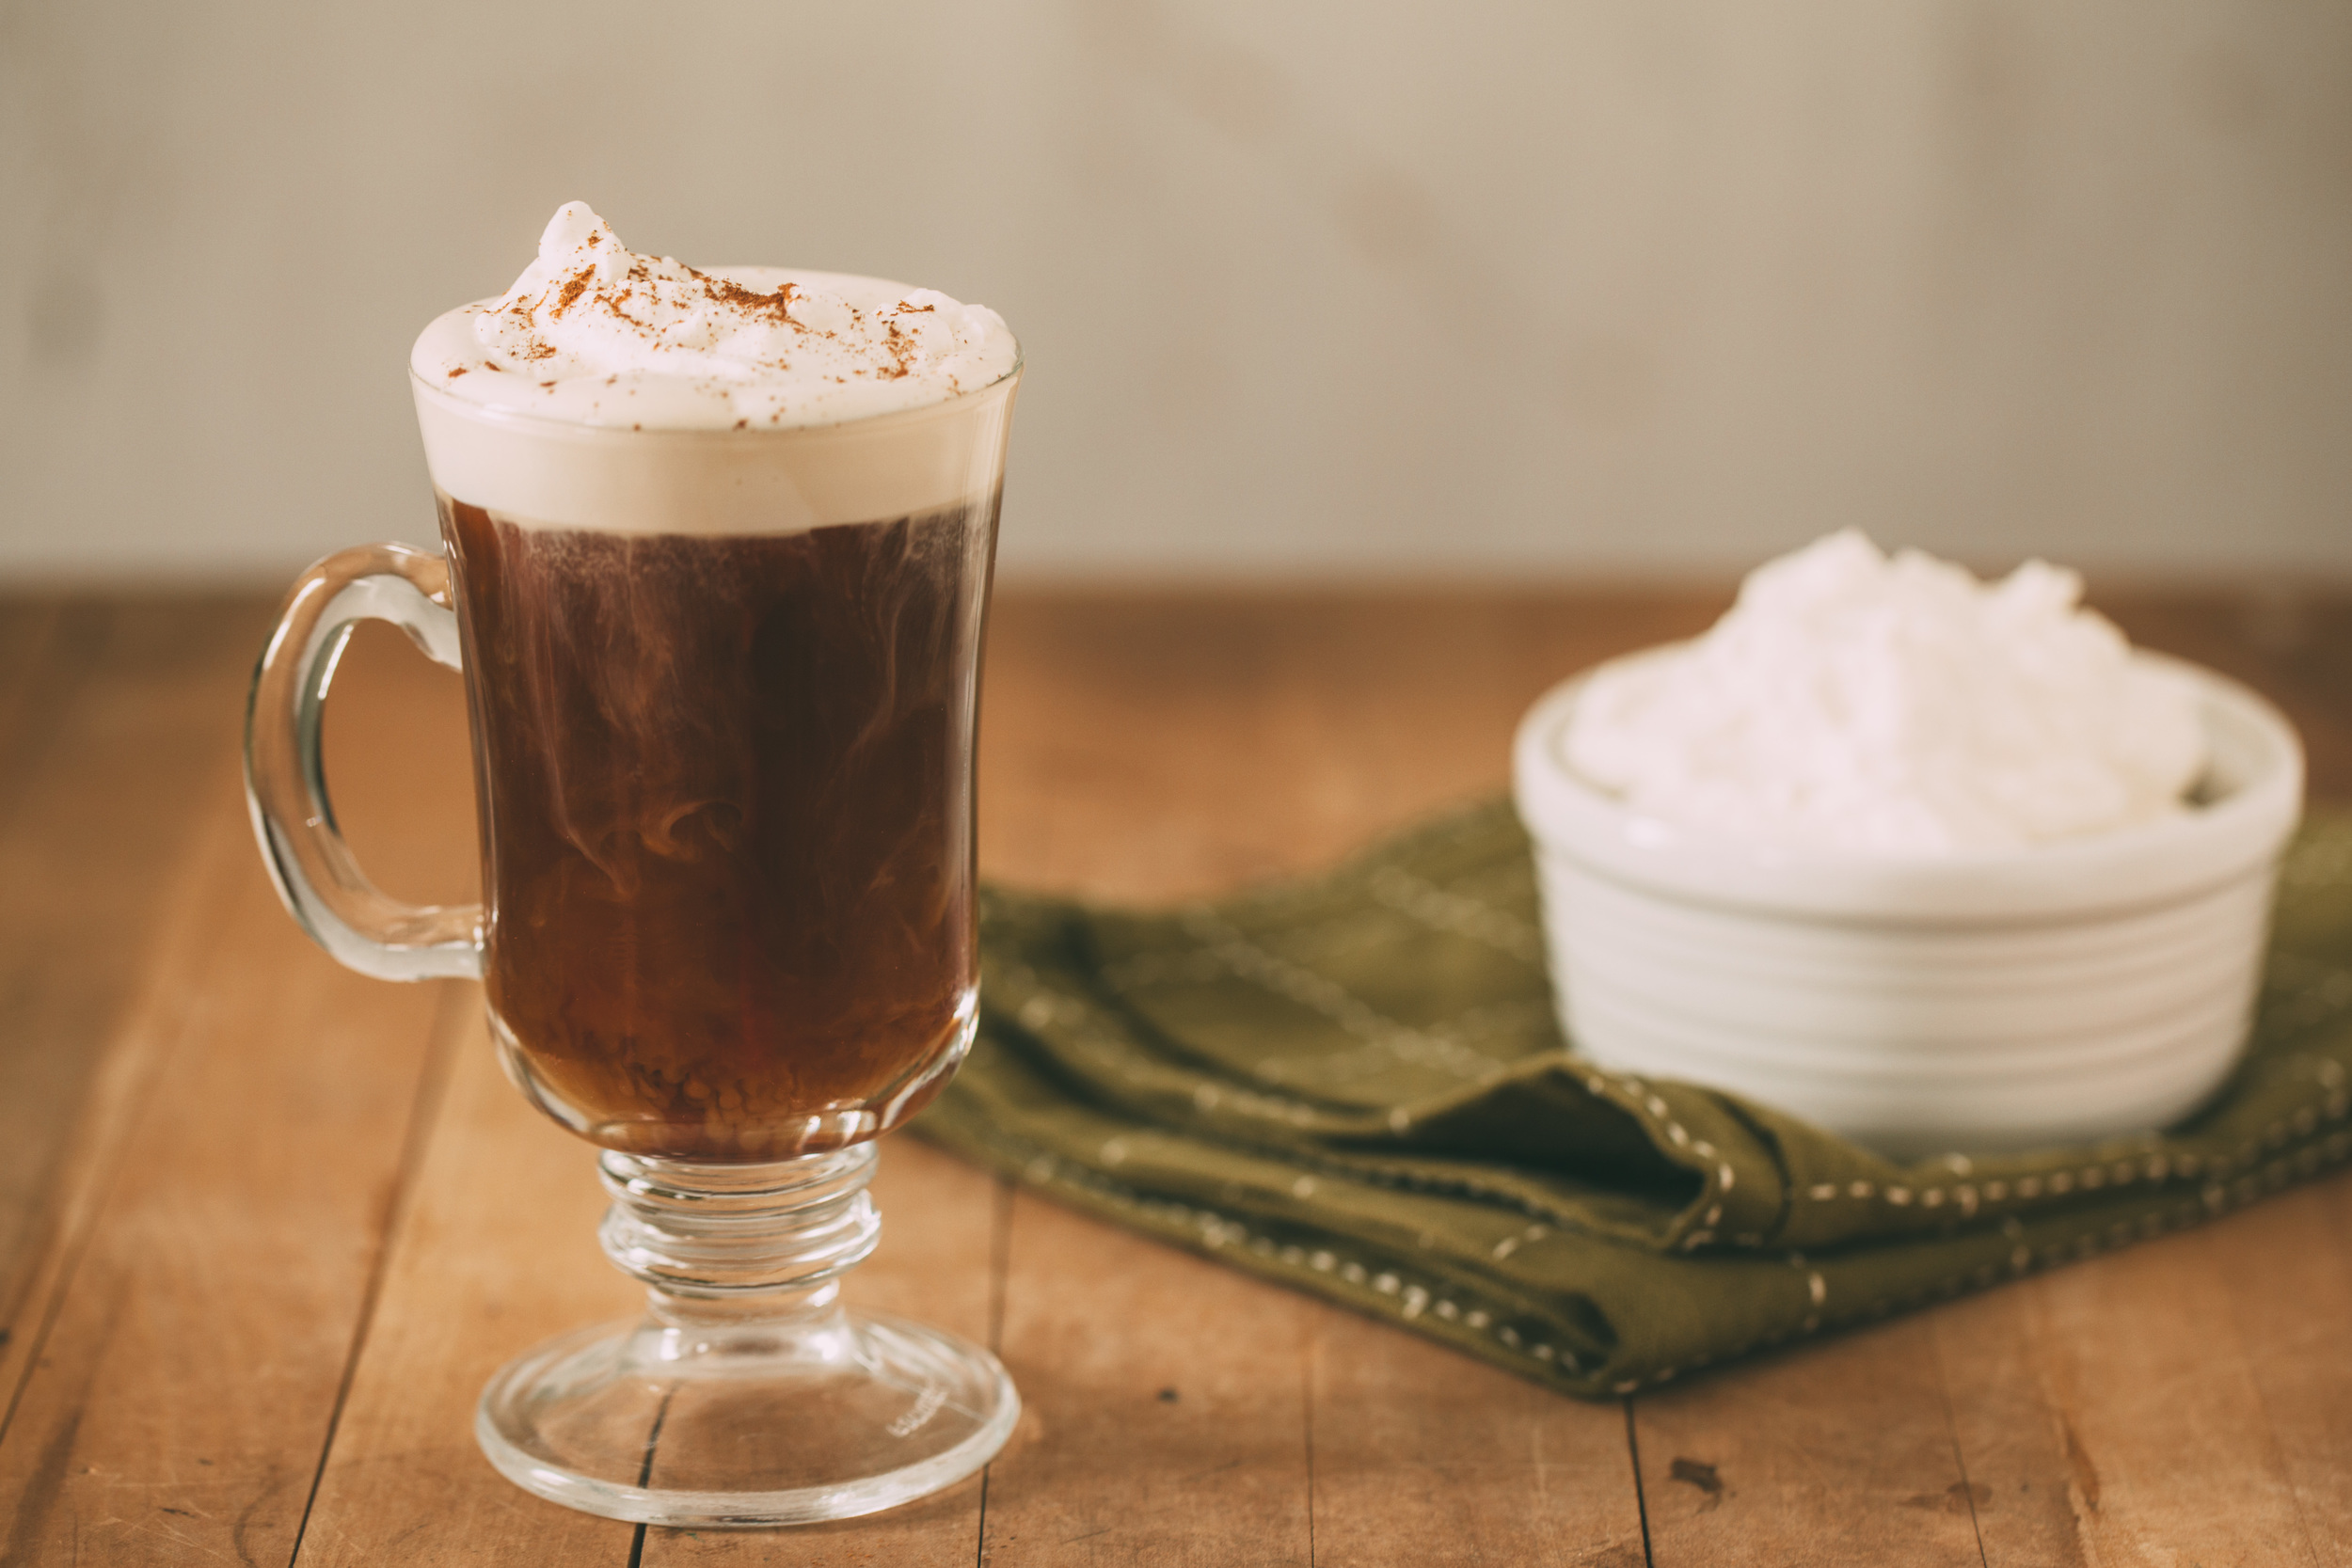 newengland-irish-coffee-2